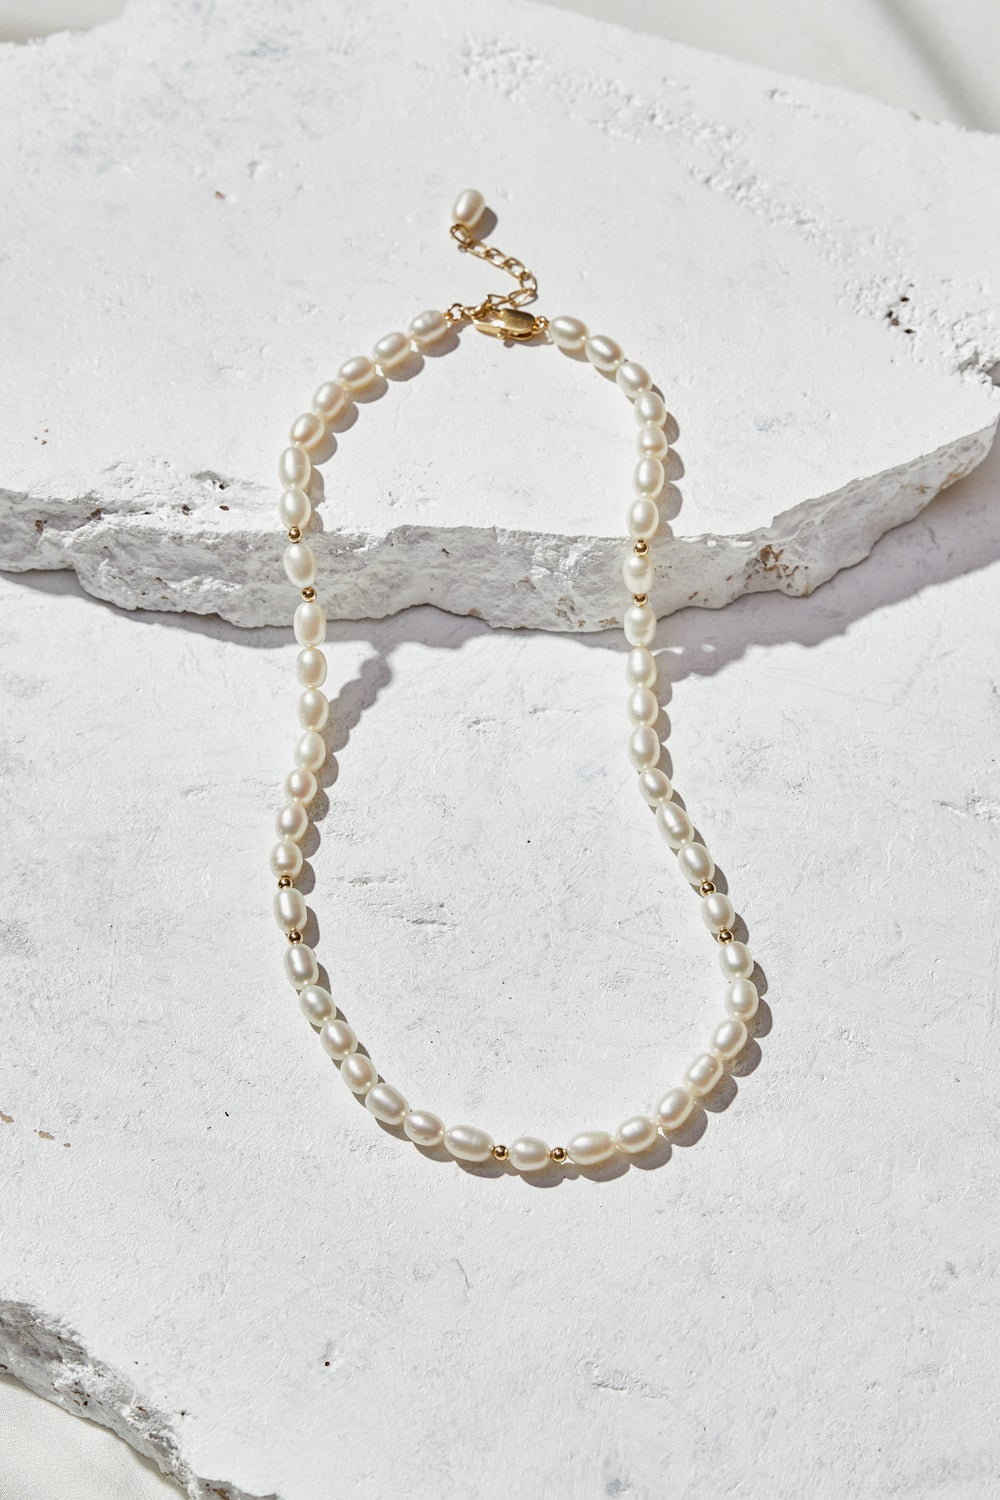 Image of Pearls with Gold Beads Beaded Necklace